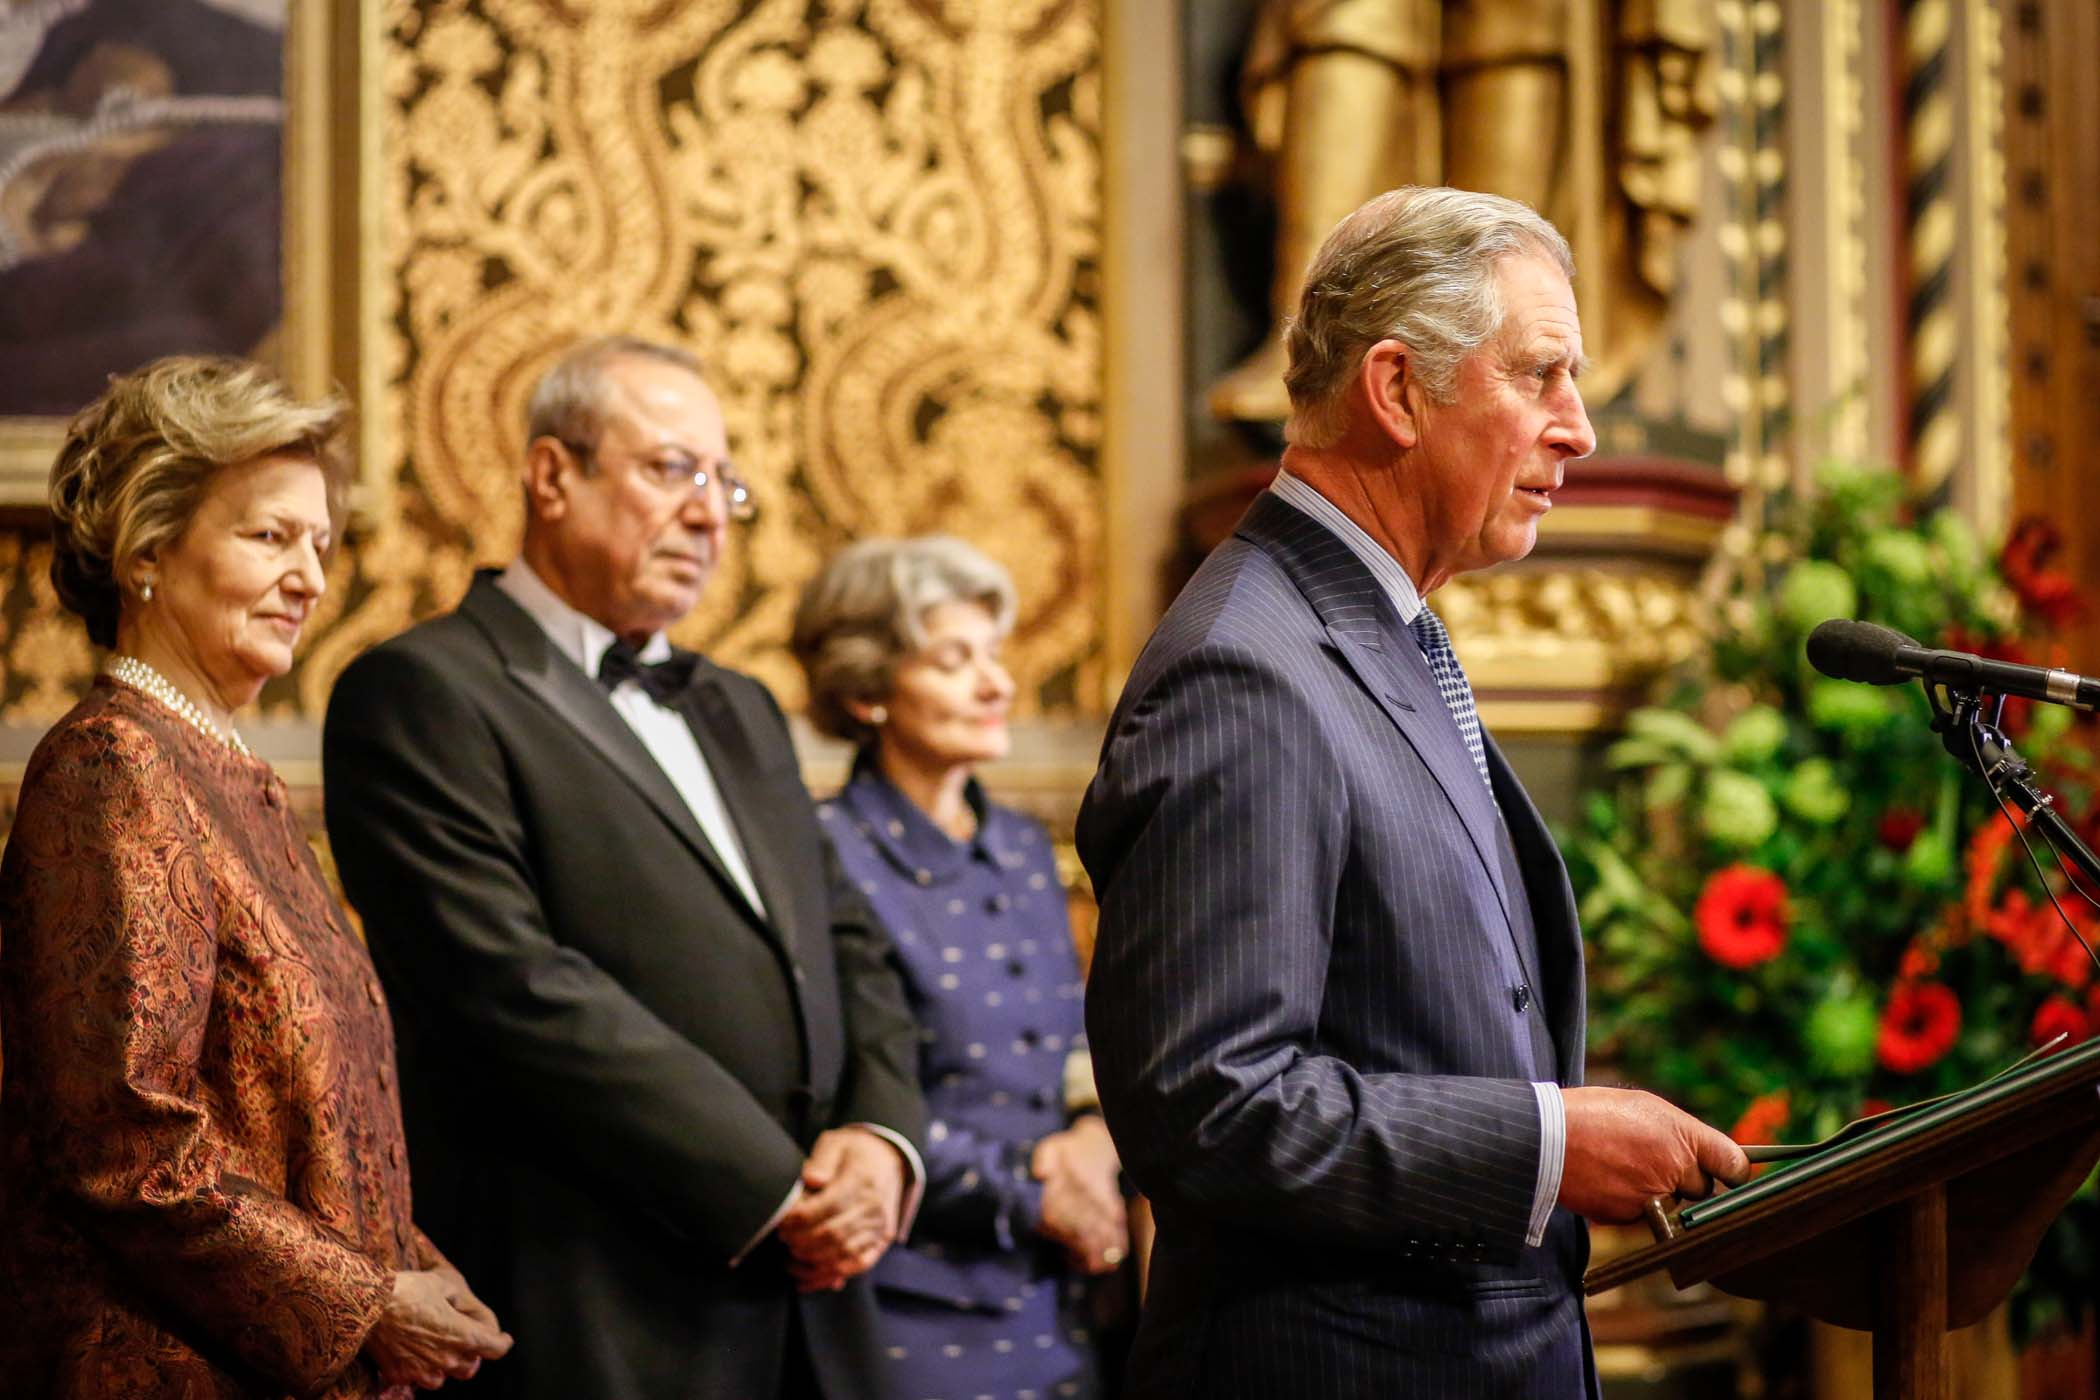 Our Patron, HRH The Prince Of Wales, Speaking At An AMAR Gala Dinner, Watched By Our Chairman, Baroness Nicholson, And Iraqi Deputy Prime Minister, Dr Rowsch Shaways.